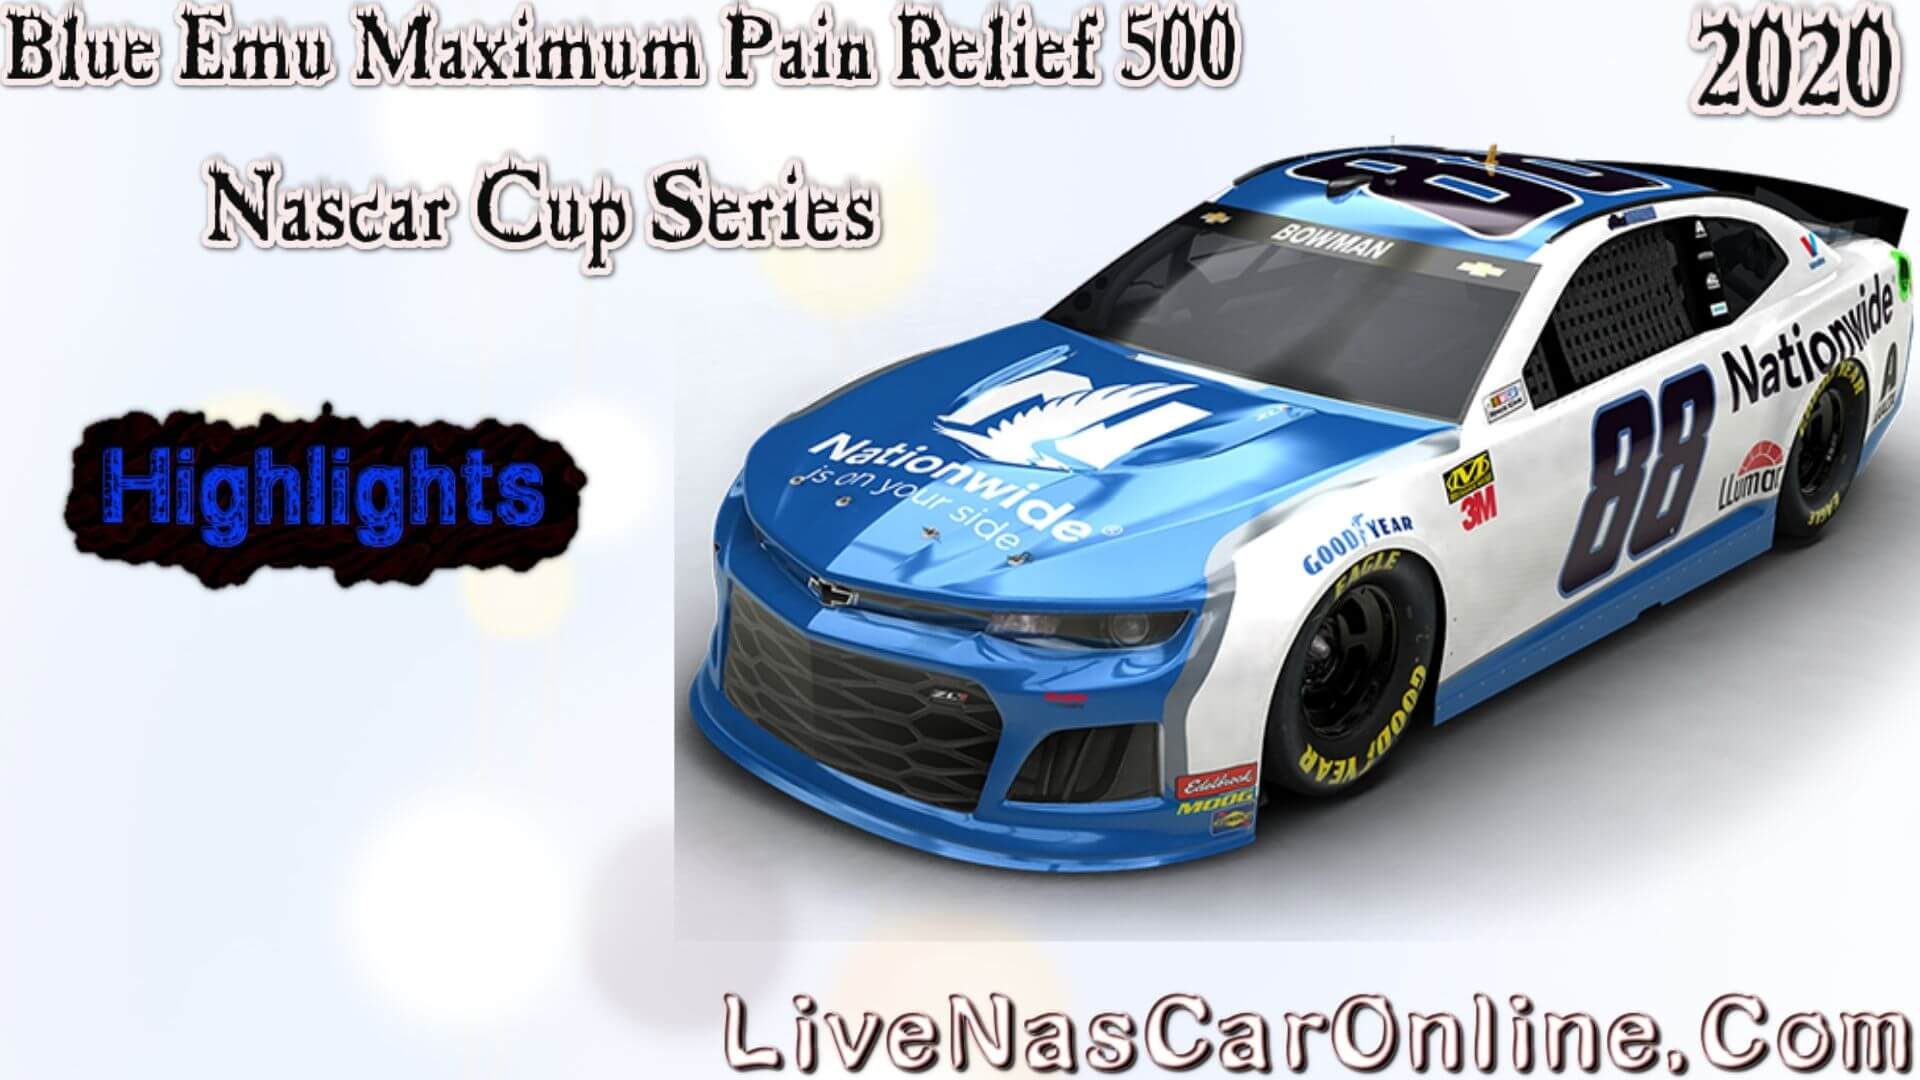 Highlights 2020 Blue Emu Maximum Pain Relief 500